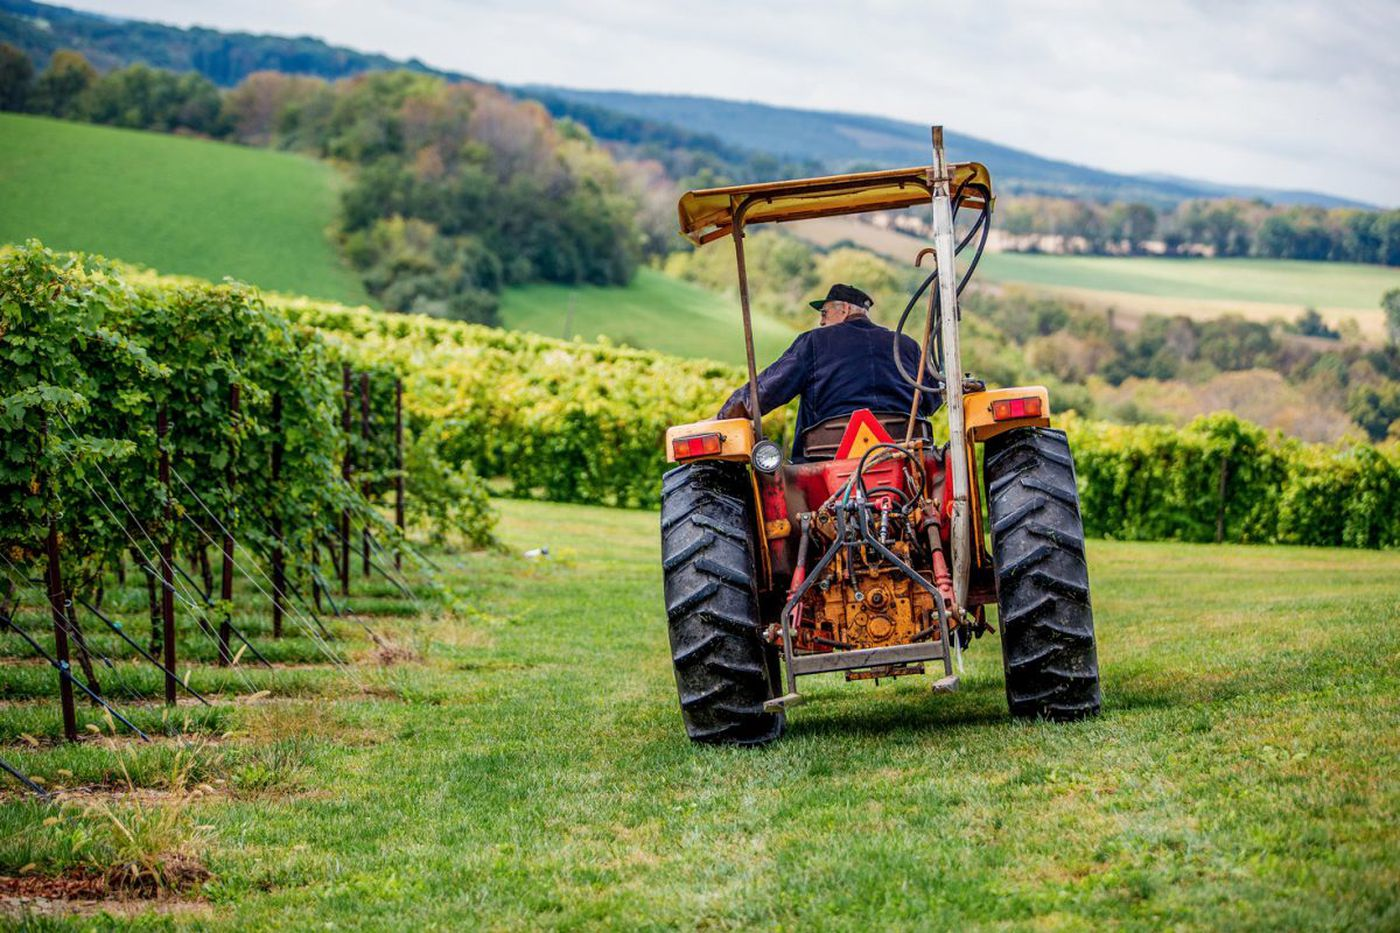 Pennsylvania's cabernet francs are coming into their own